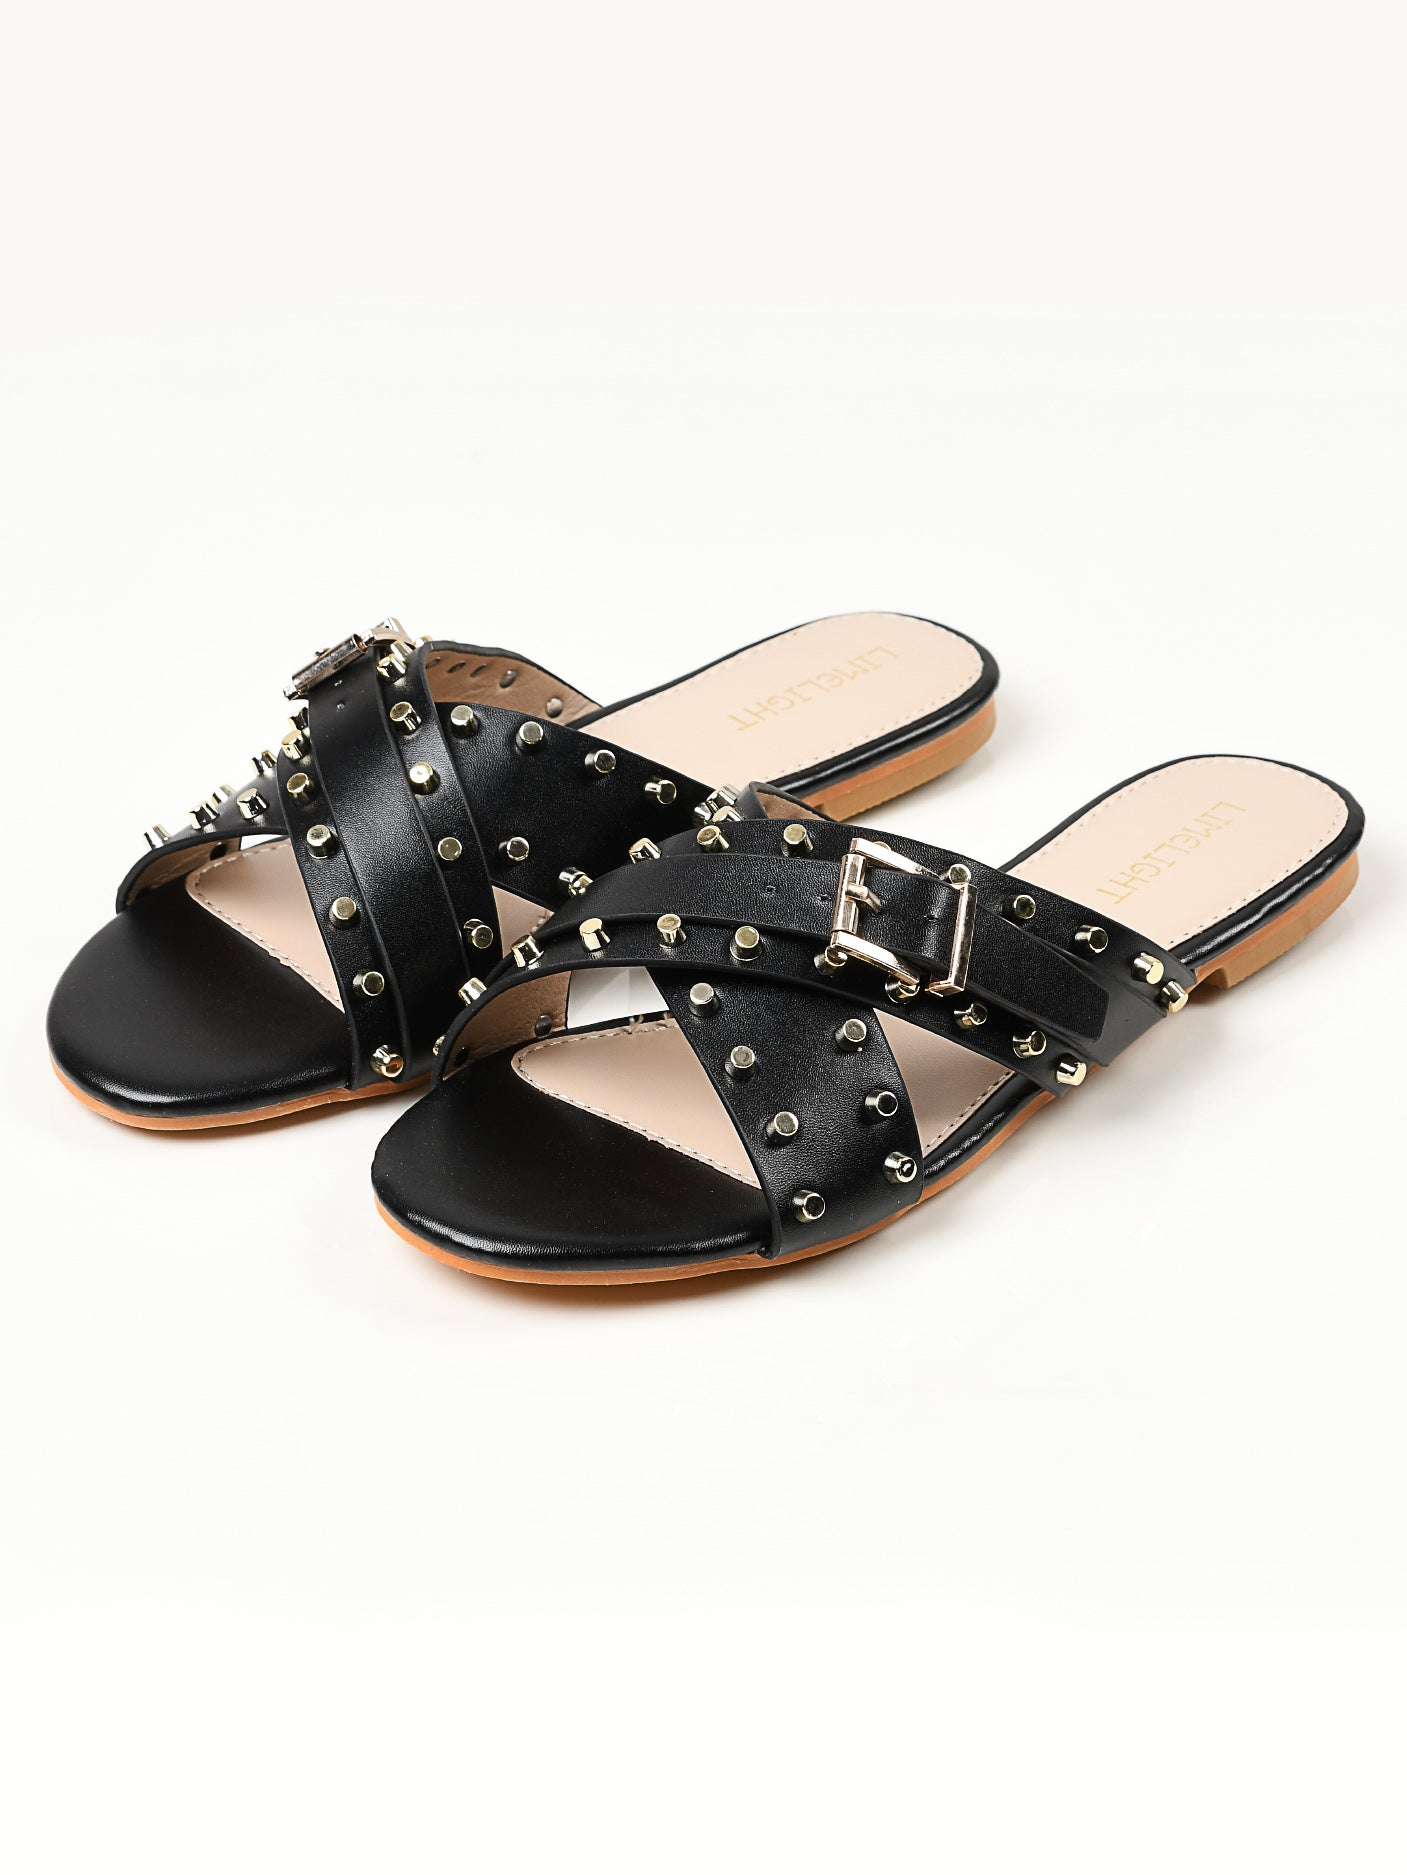 Crisscross Studded Flats - Black